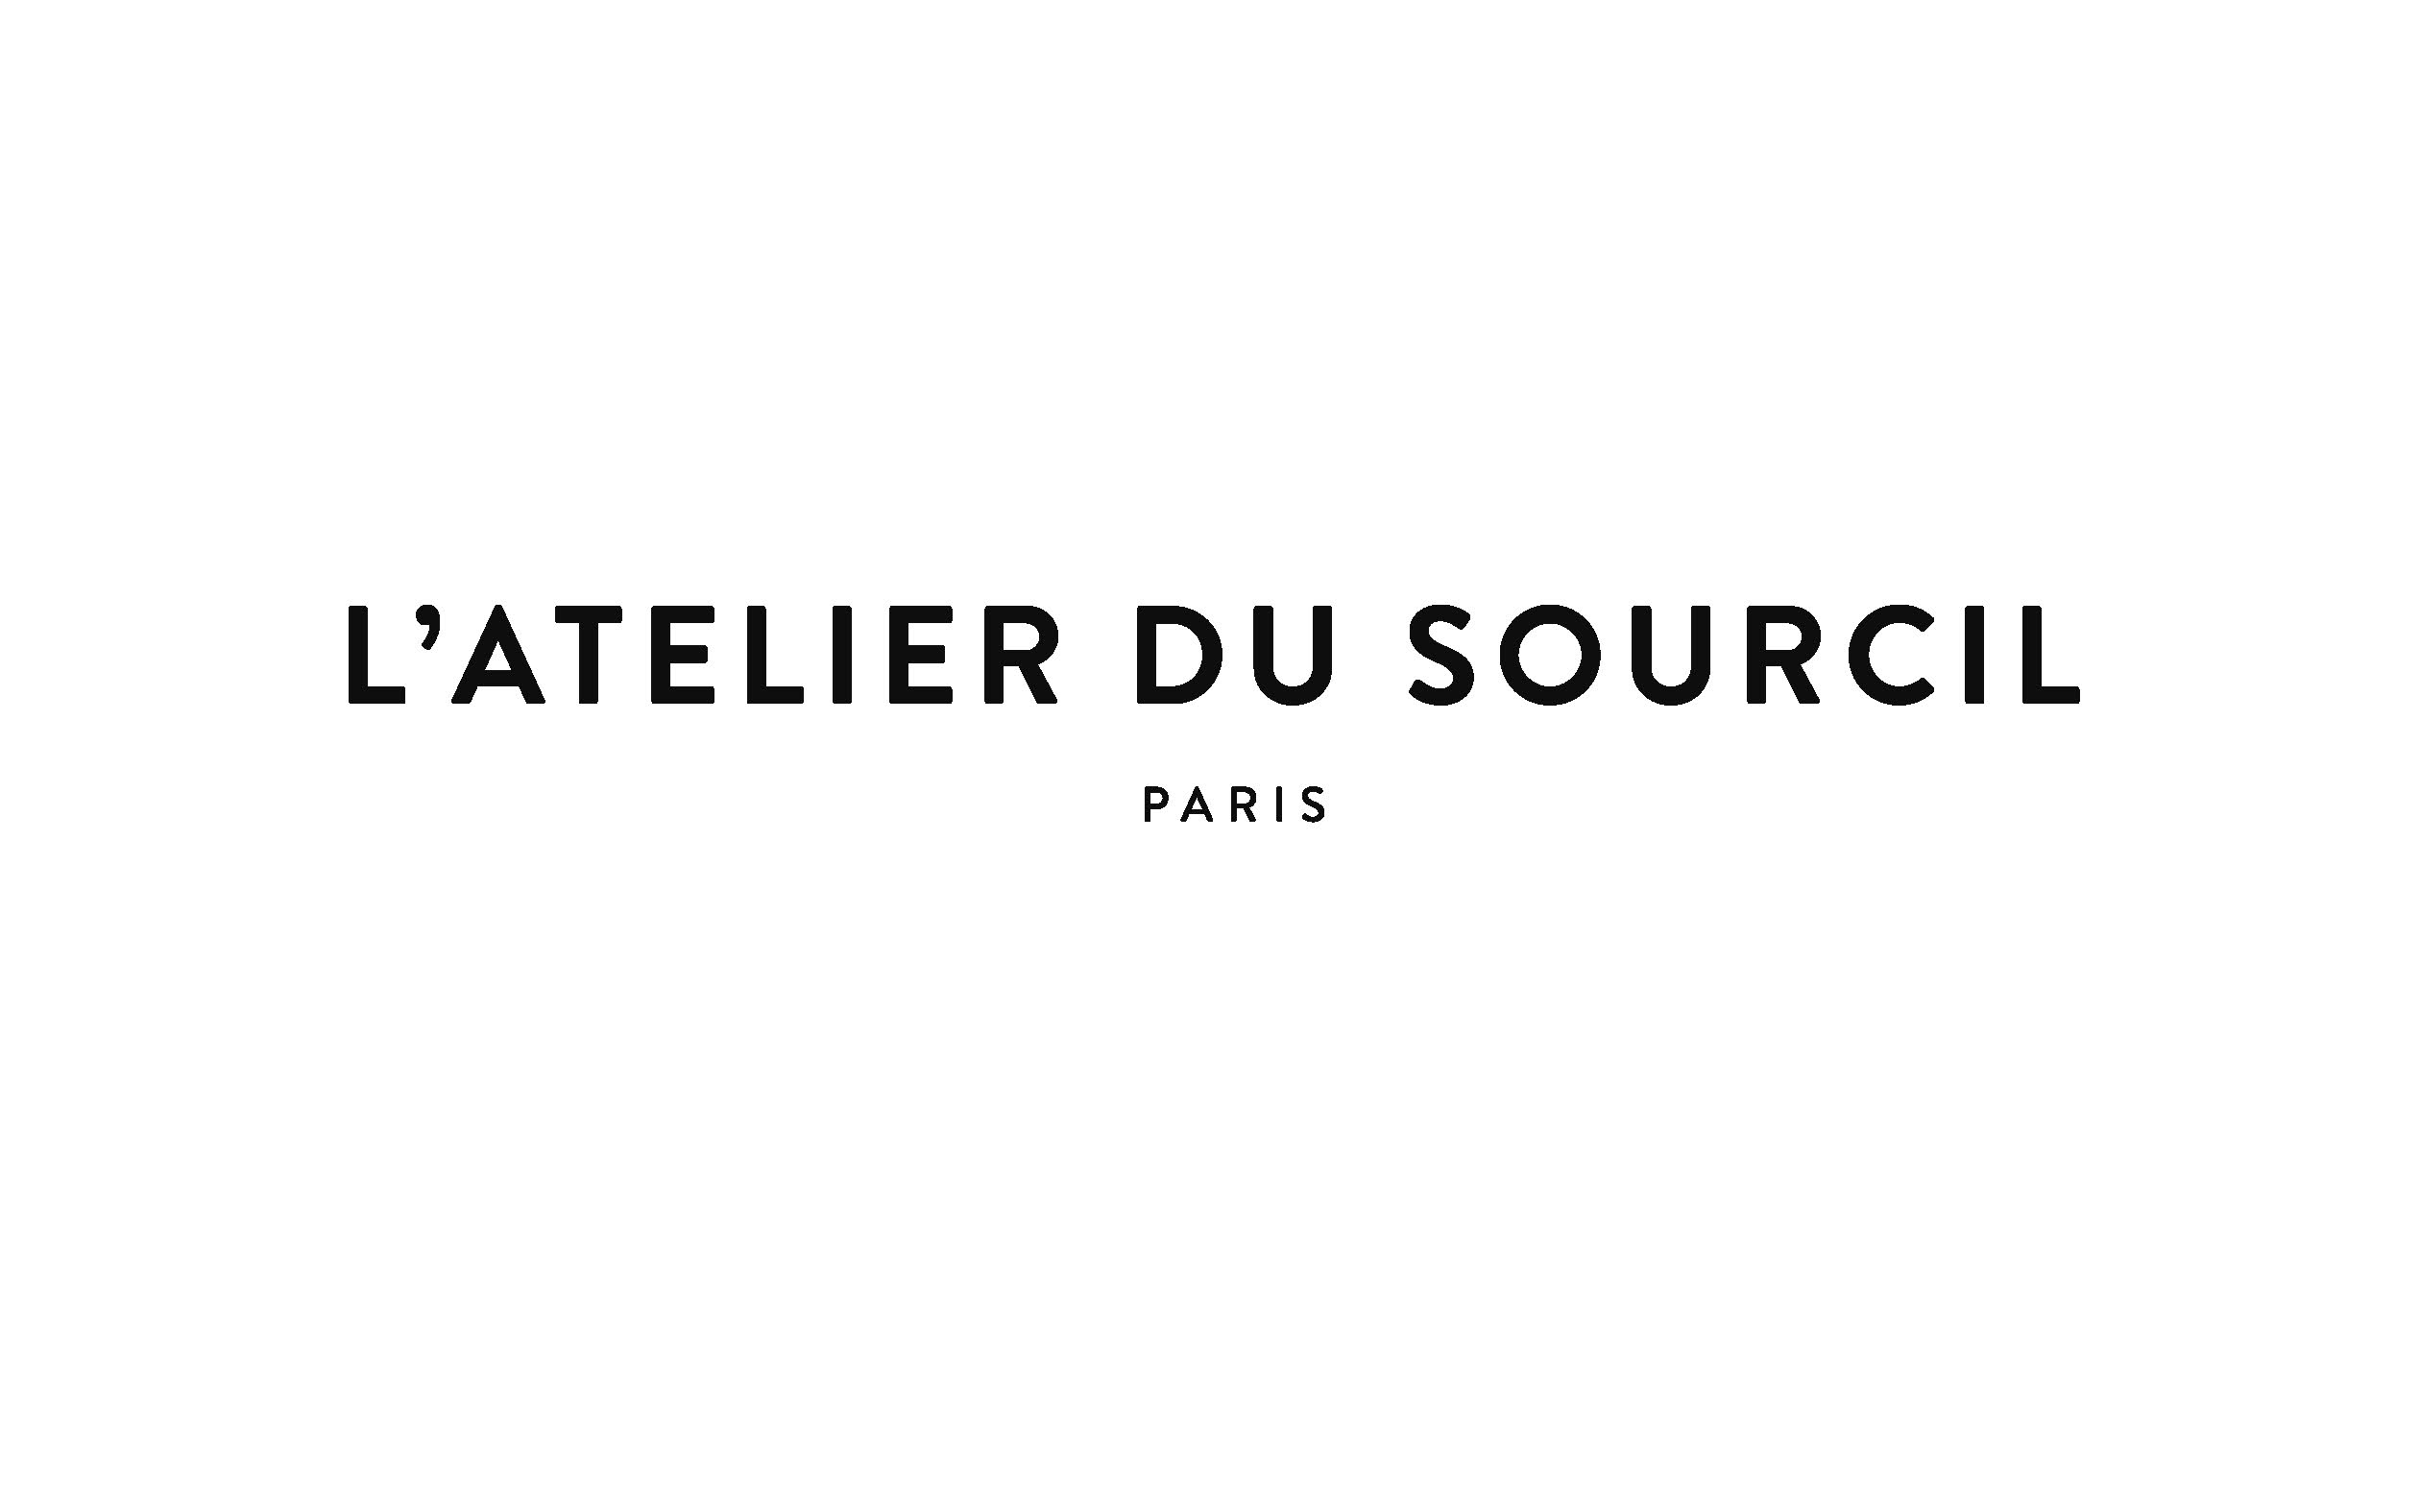 L'Atelier du Sourcil - Paris 7